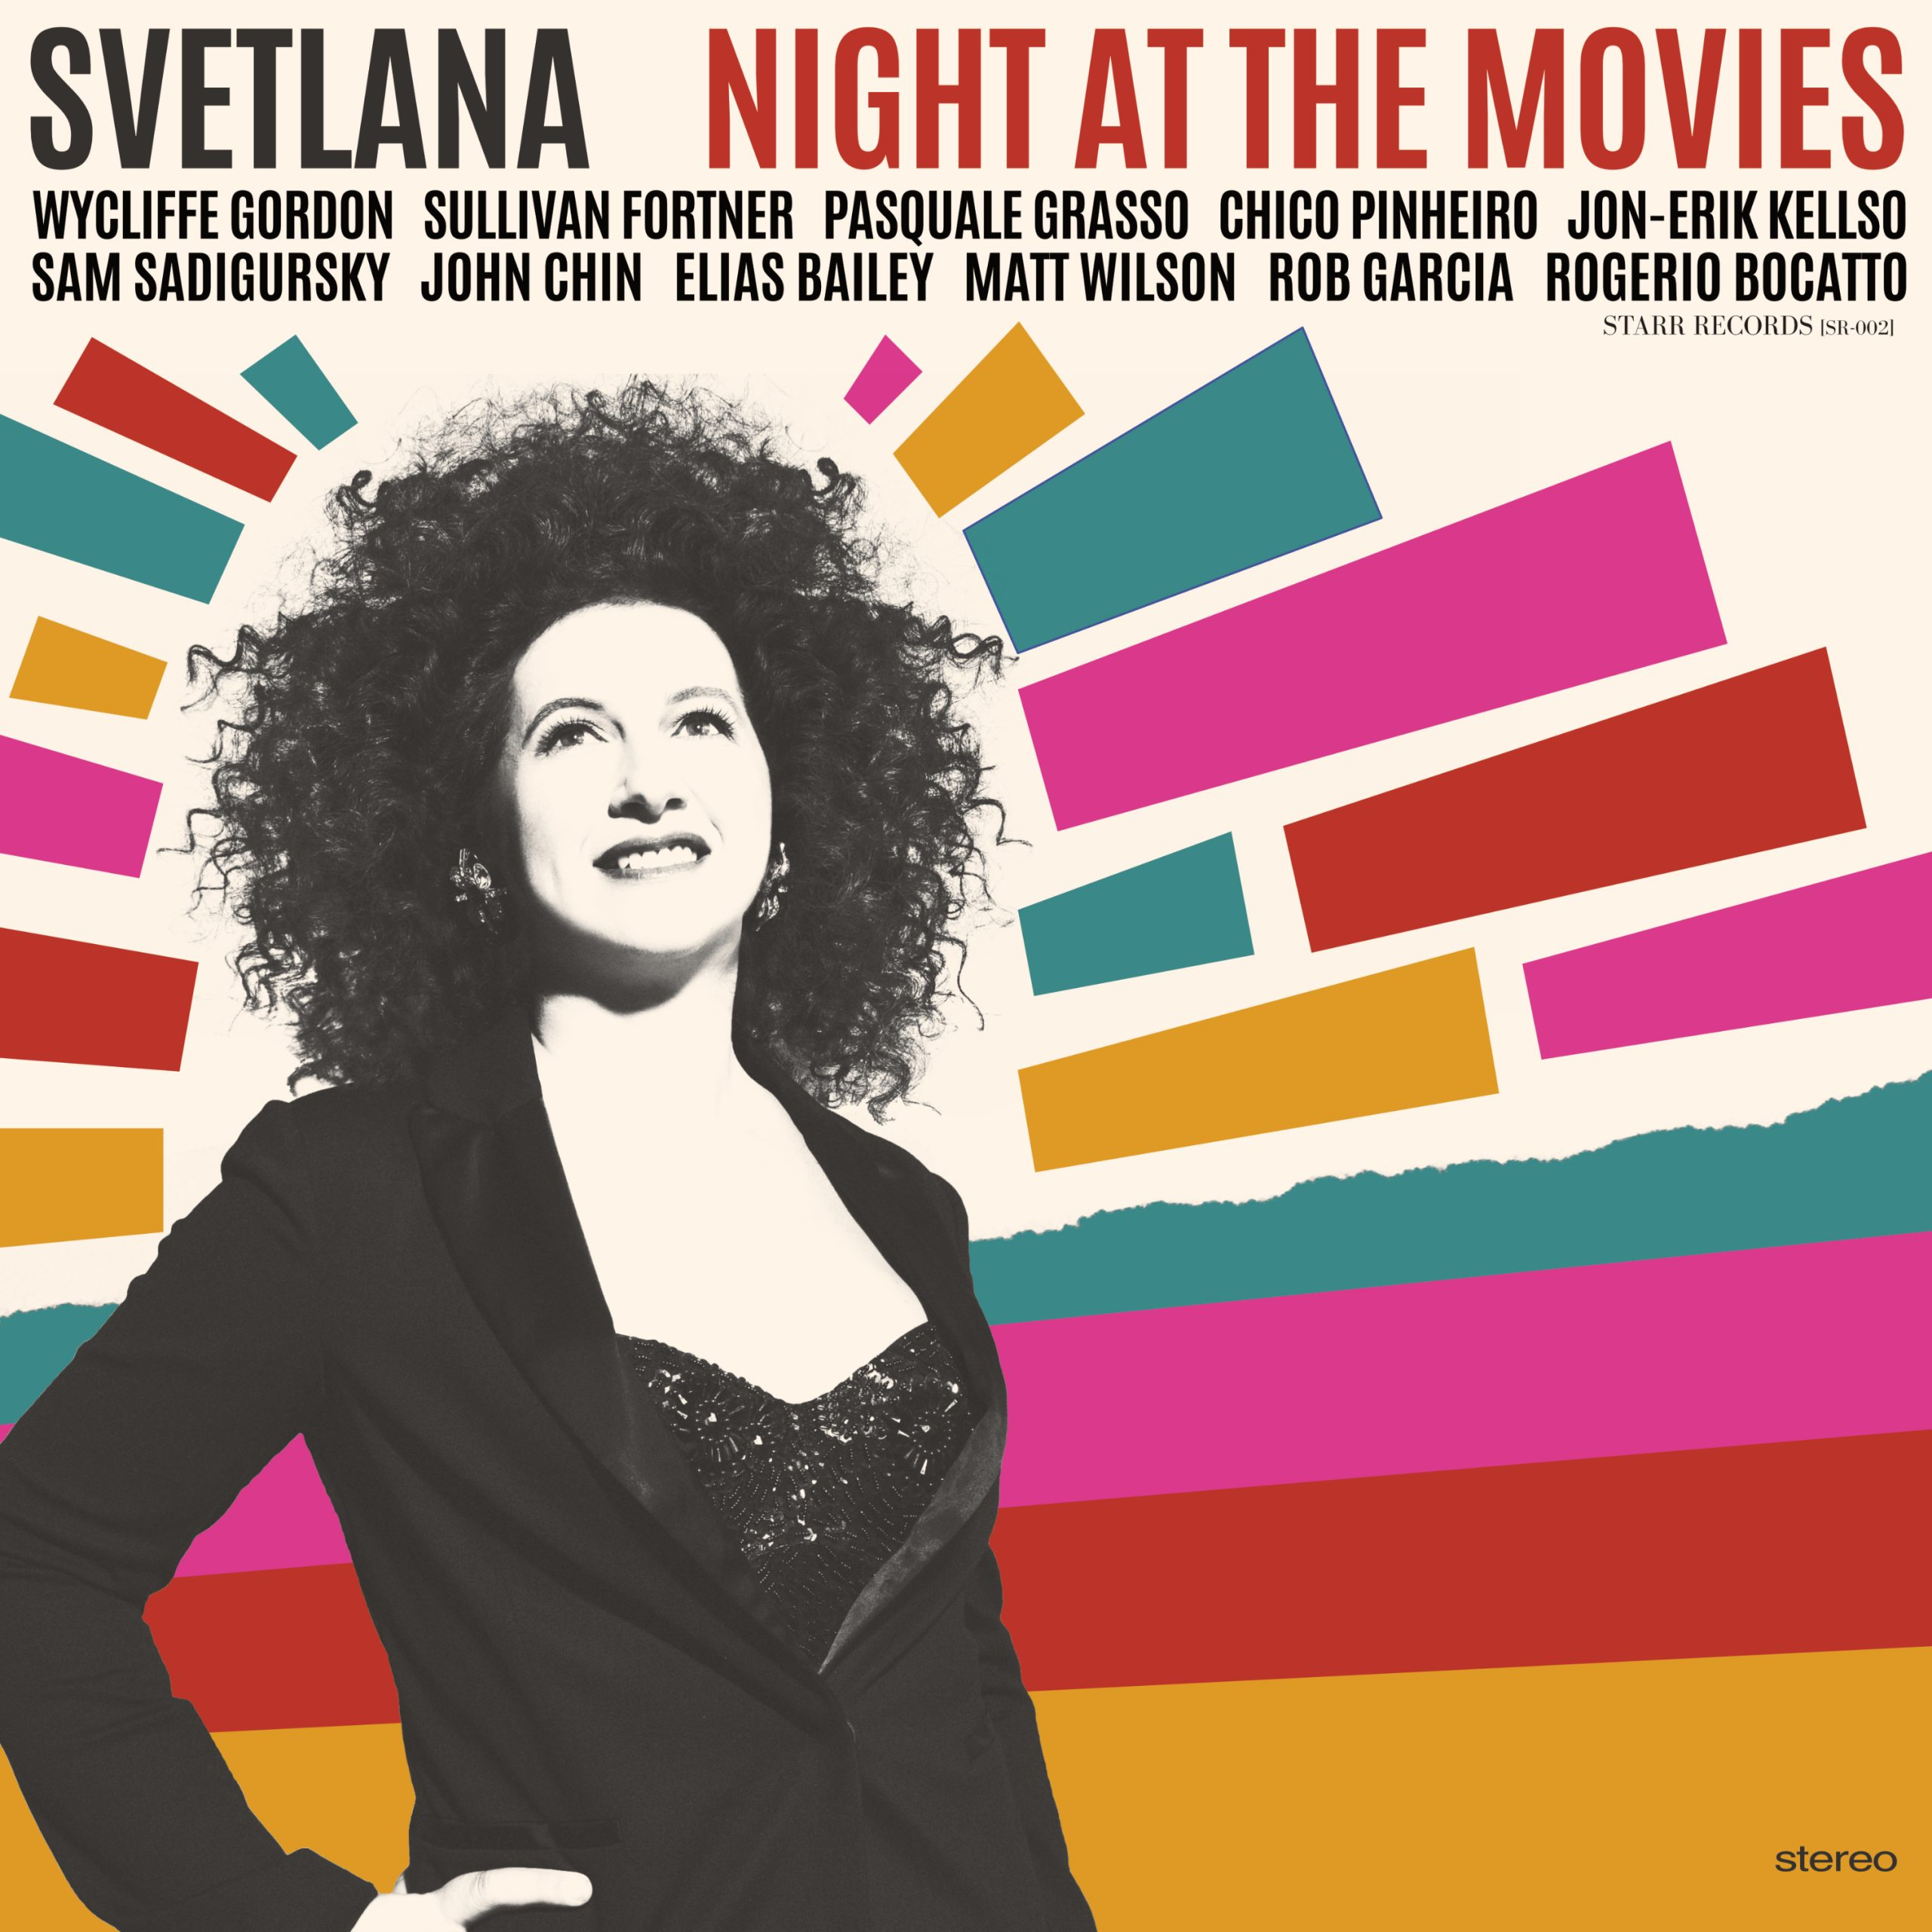 EVENT ANNOUNCEMENT: Svetlana and The New York Collective To Tour NIGHT AT THE MOVIES This February